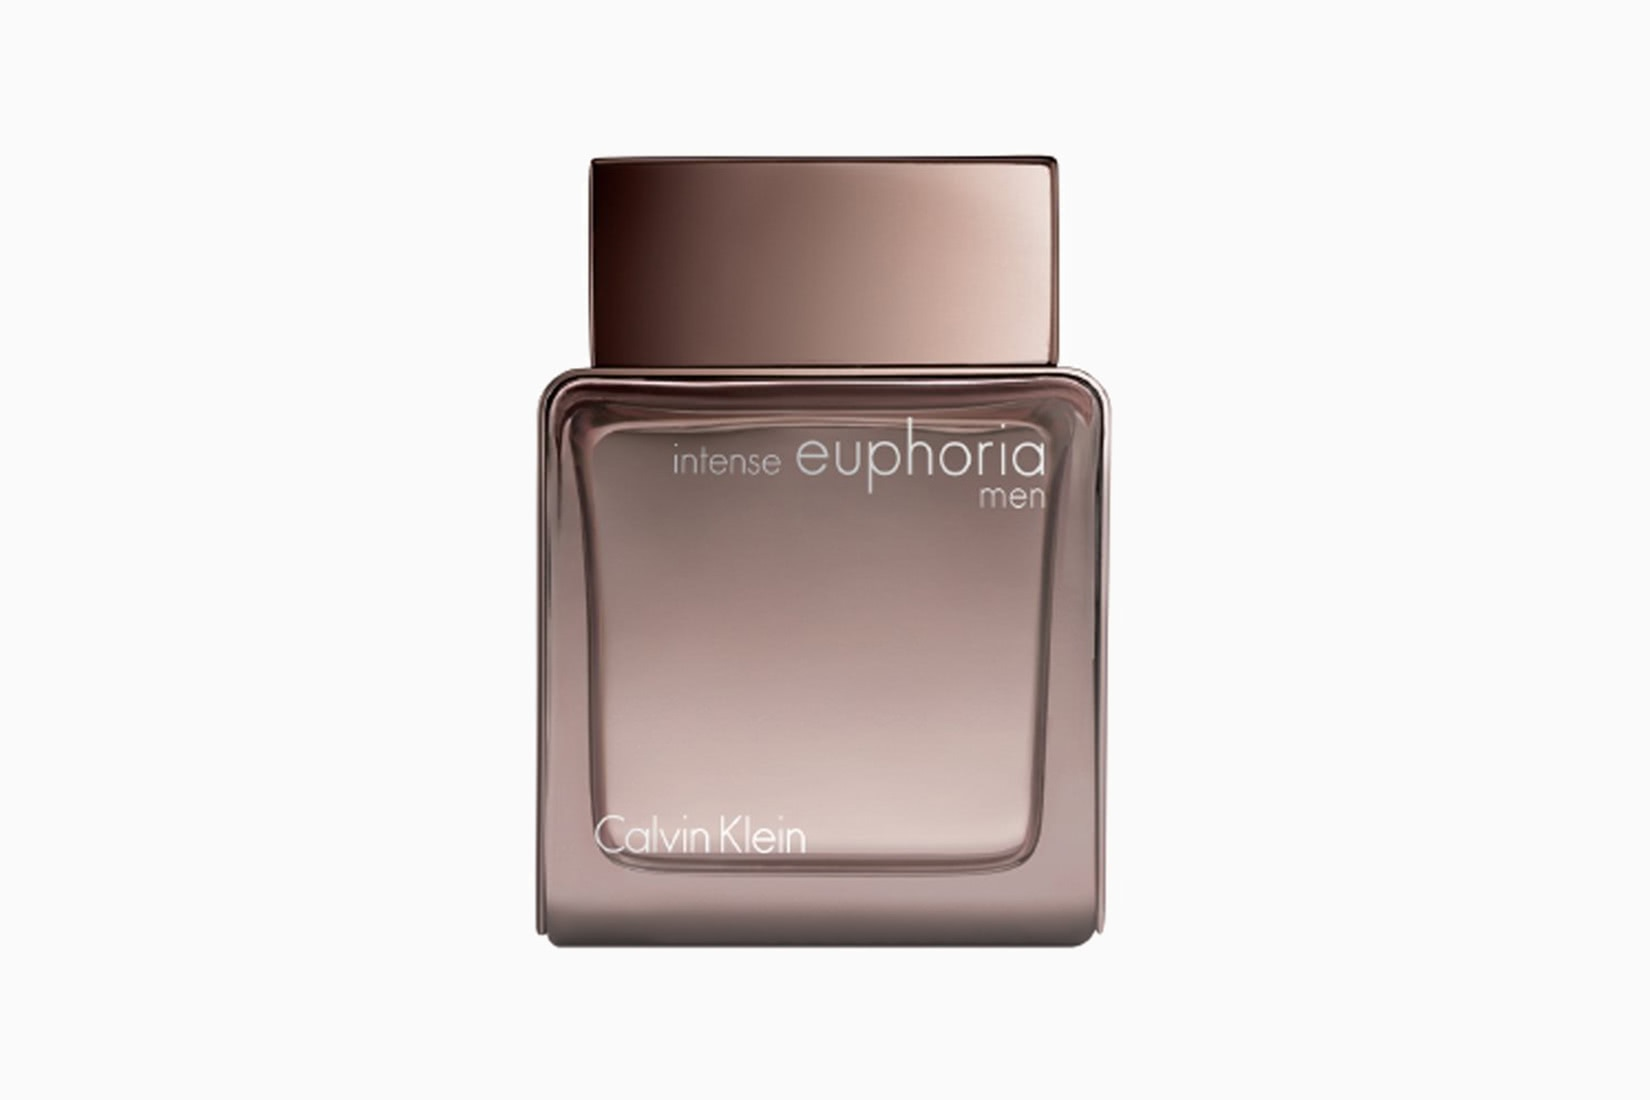 best men cologne calvin klein intense euphoria - Luxe Digital